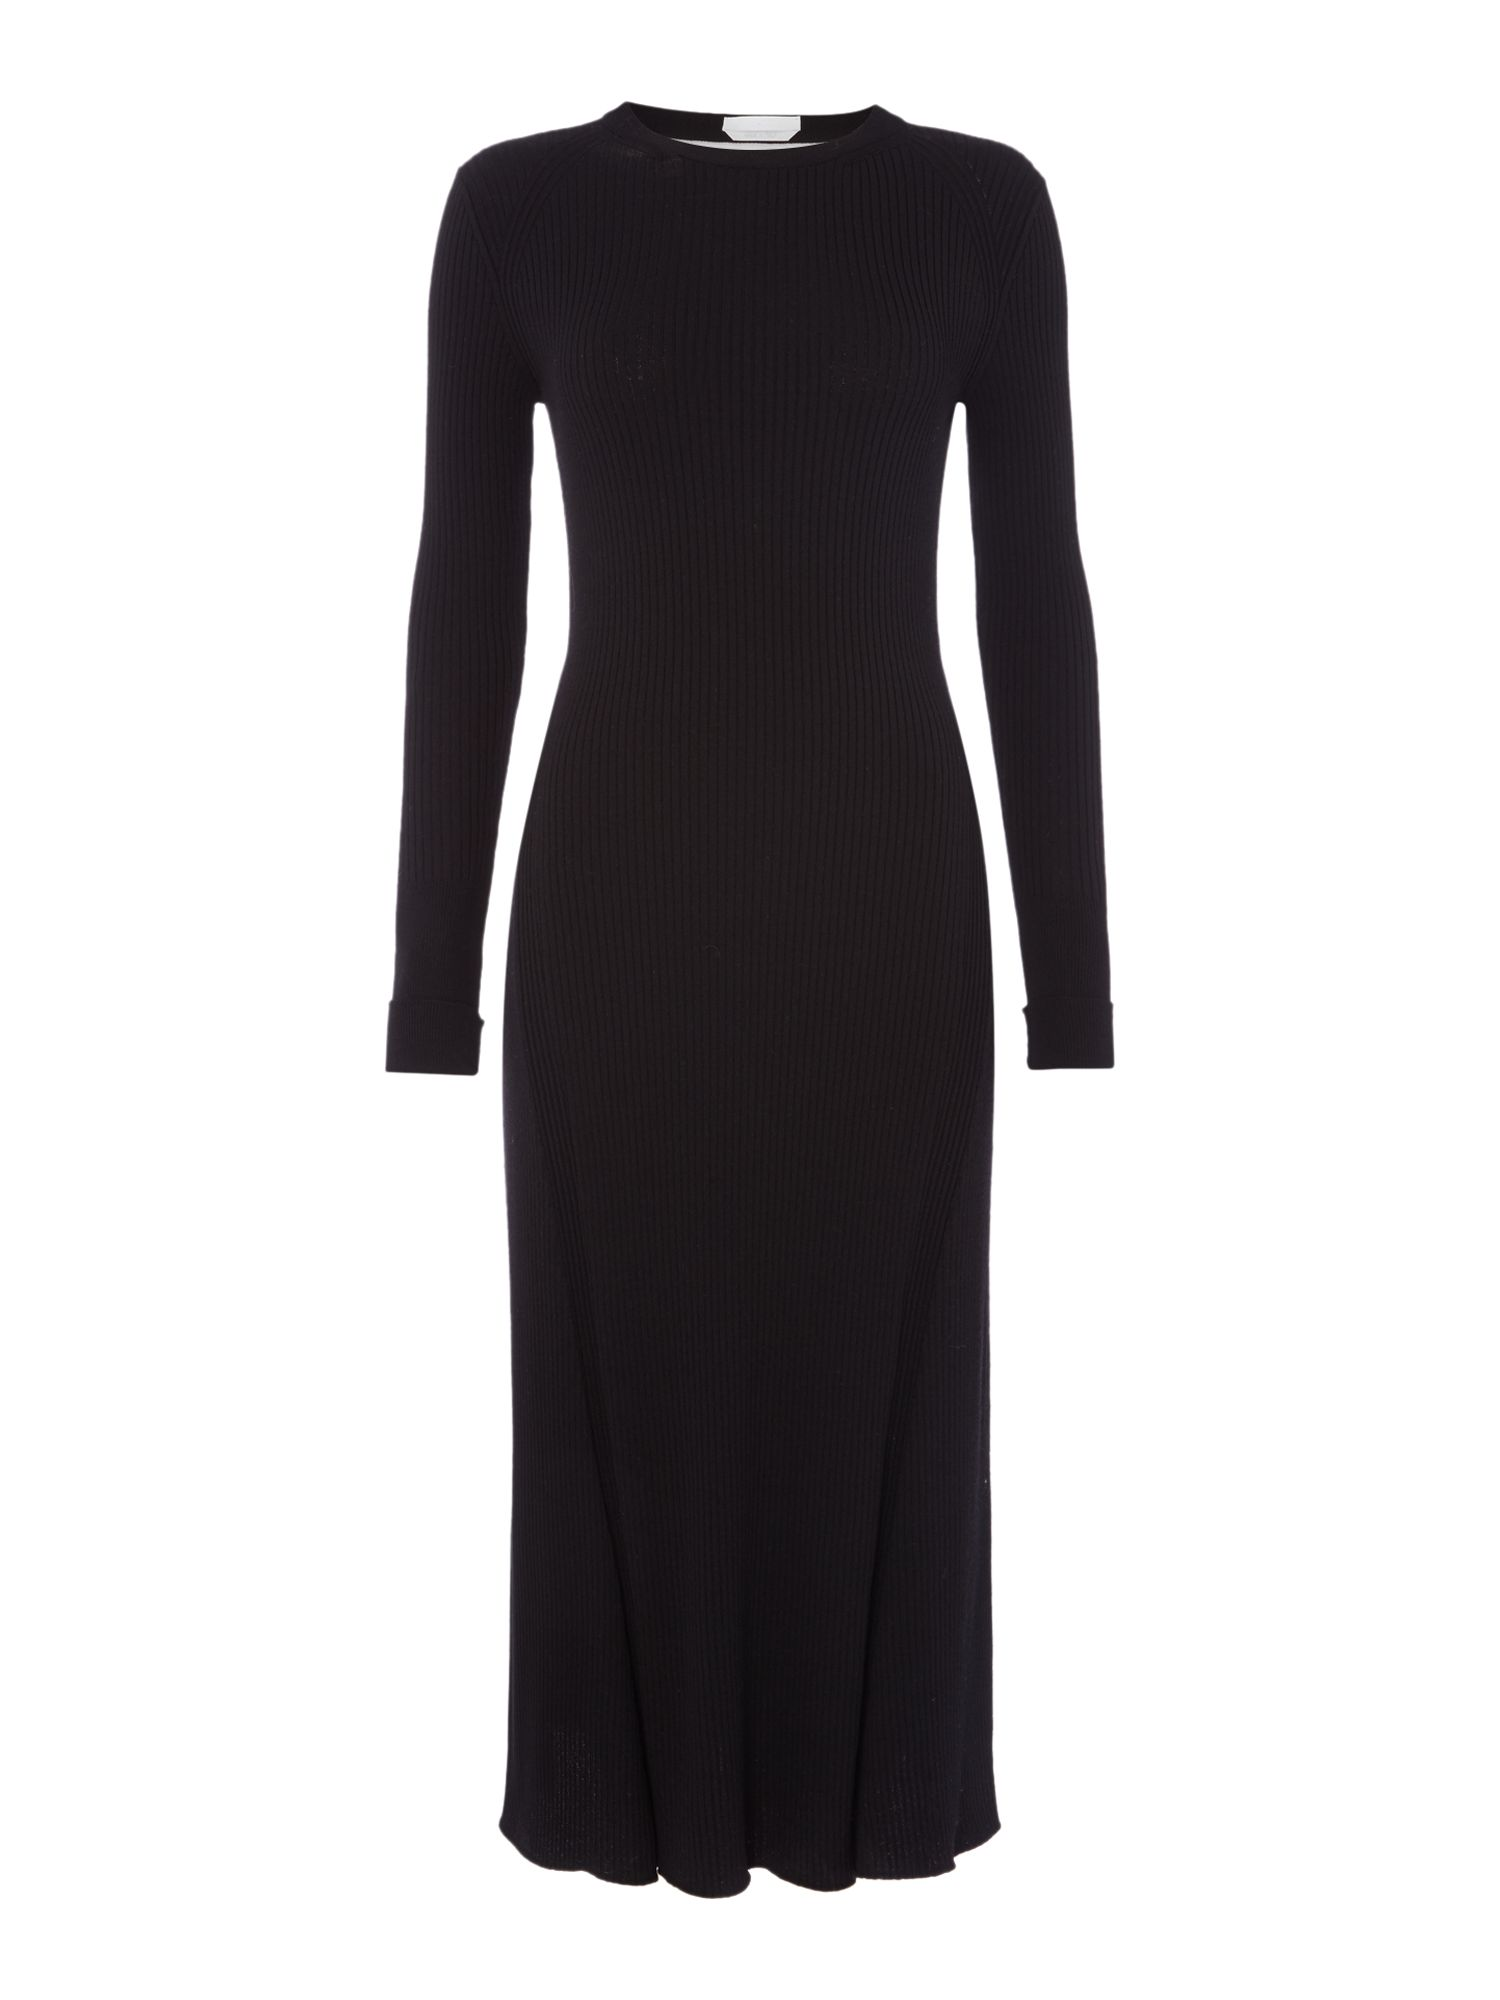 Hugo Boss Faustine Knit Dress, Black